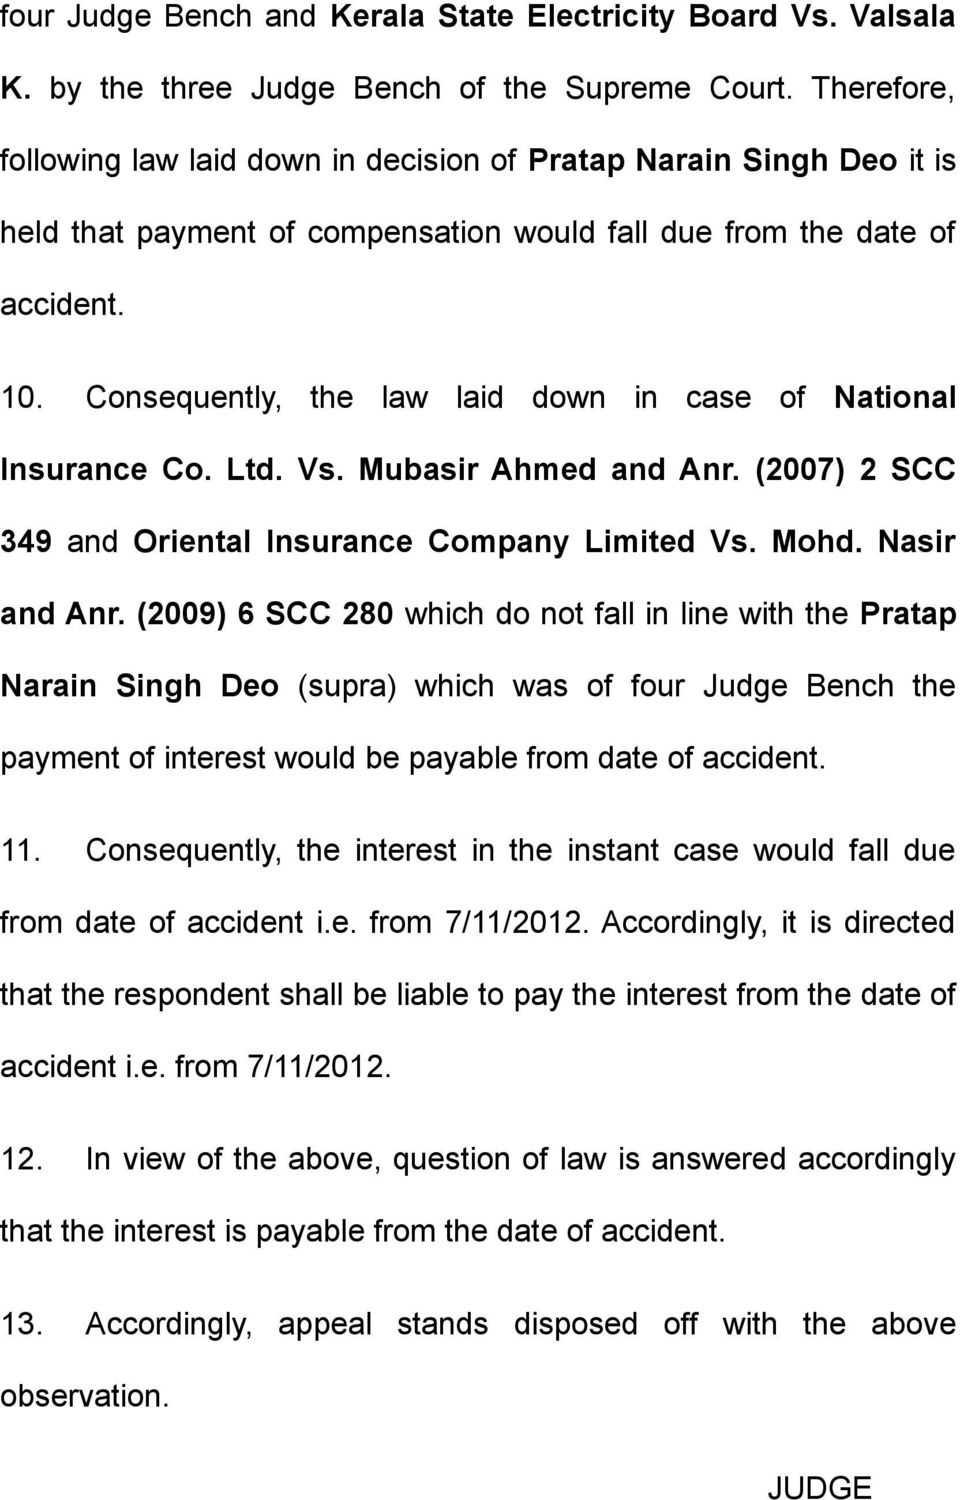 Consequently, the law laid down in case of National Insurance Co. Ltd. Vs. Mubasir Ahmed and Anr. (2007) 2 SCC 349 and Oriental Insurance Company Limited Vs. Mohd. Nasir and Anr.